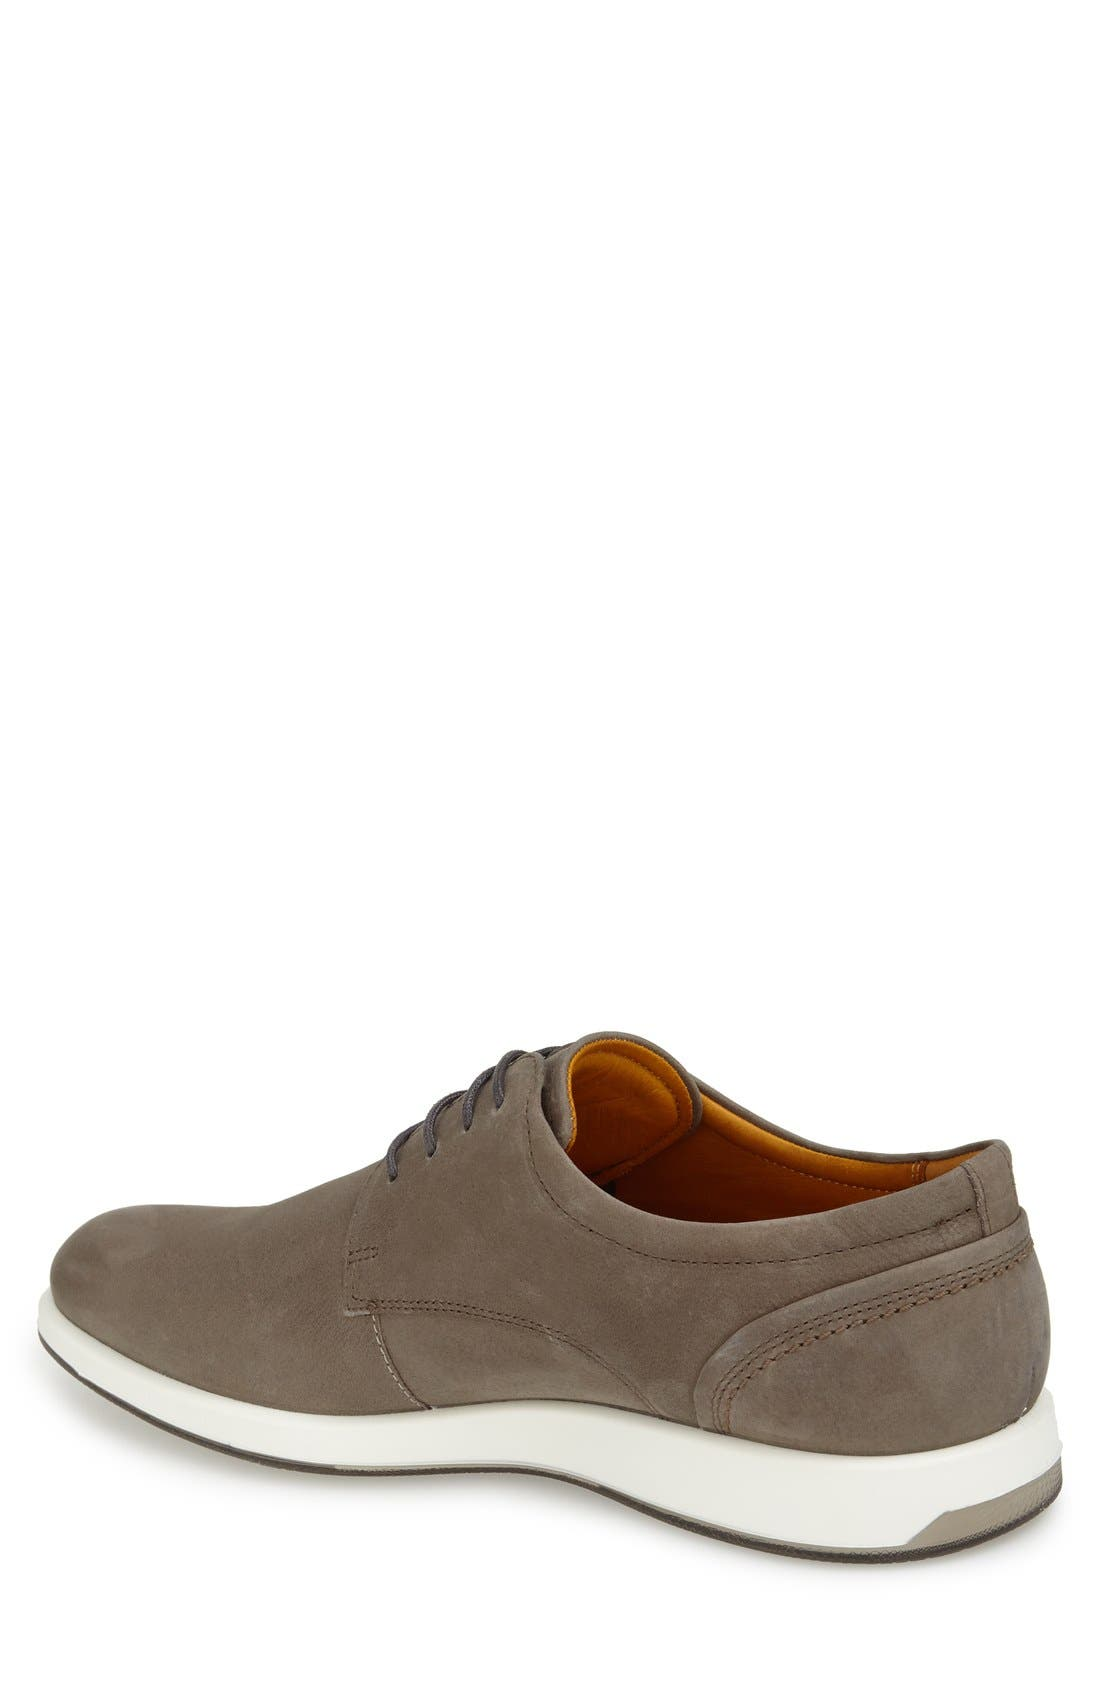 'Jared' Leather Oxford,                             Alternate thumbnail 2, color,                             062